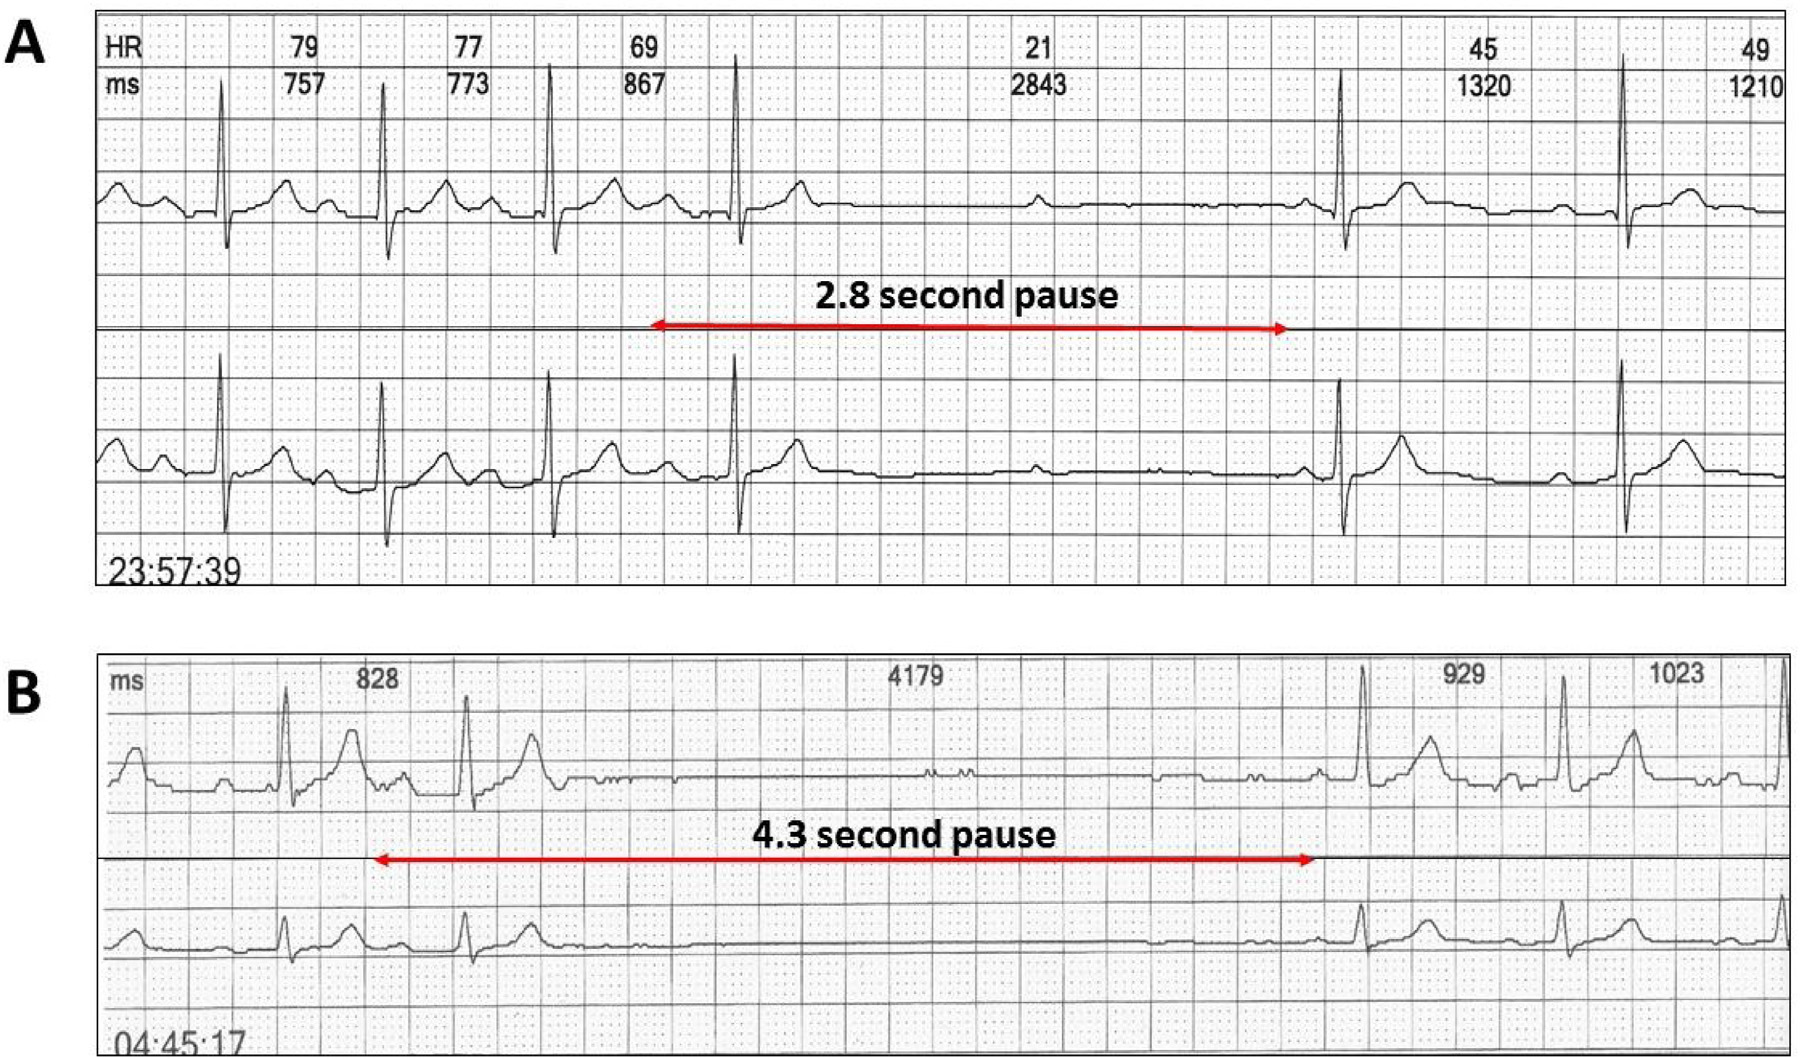 Figure 2  Two channel Holter monitor recordings of atypical Wenckebach AV sequences due to abrupt nocturnal slowing. A: Wenckebach AV sequence with a 2.8 second pause coinciding with the dropped beat. B: Wenckebach sequence interrupted by a 4.3 second sinus pause and hence no dropped beat.